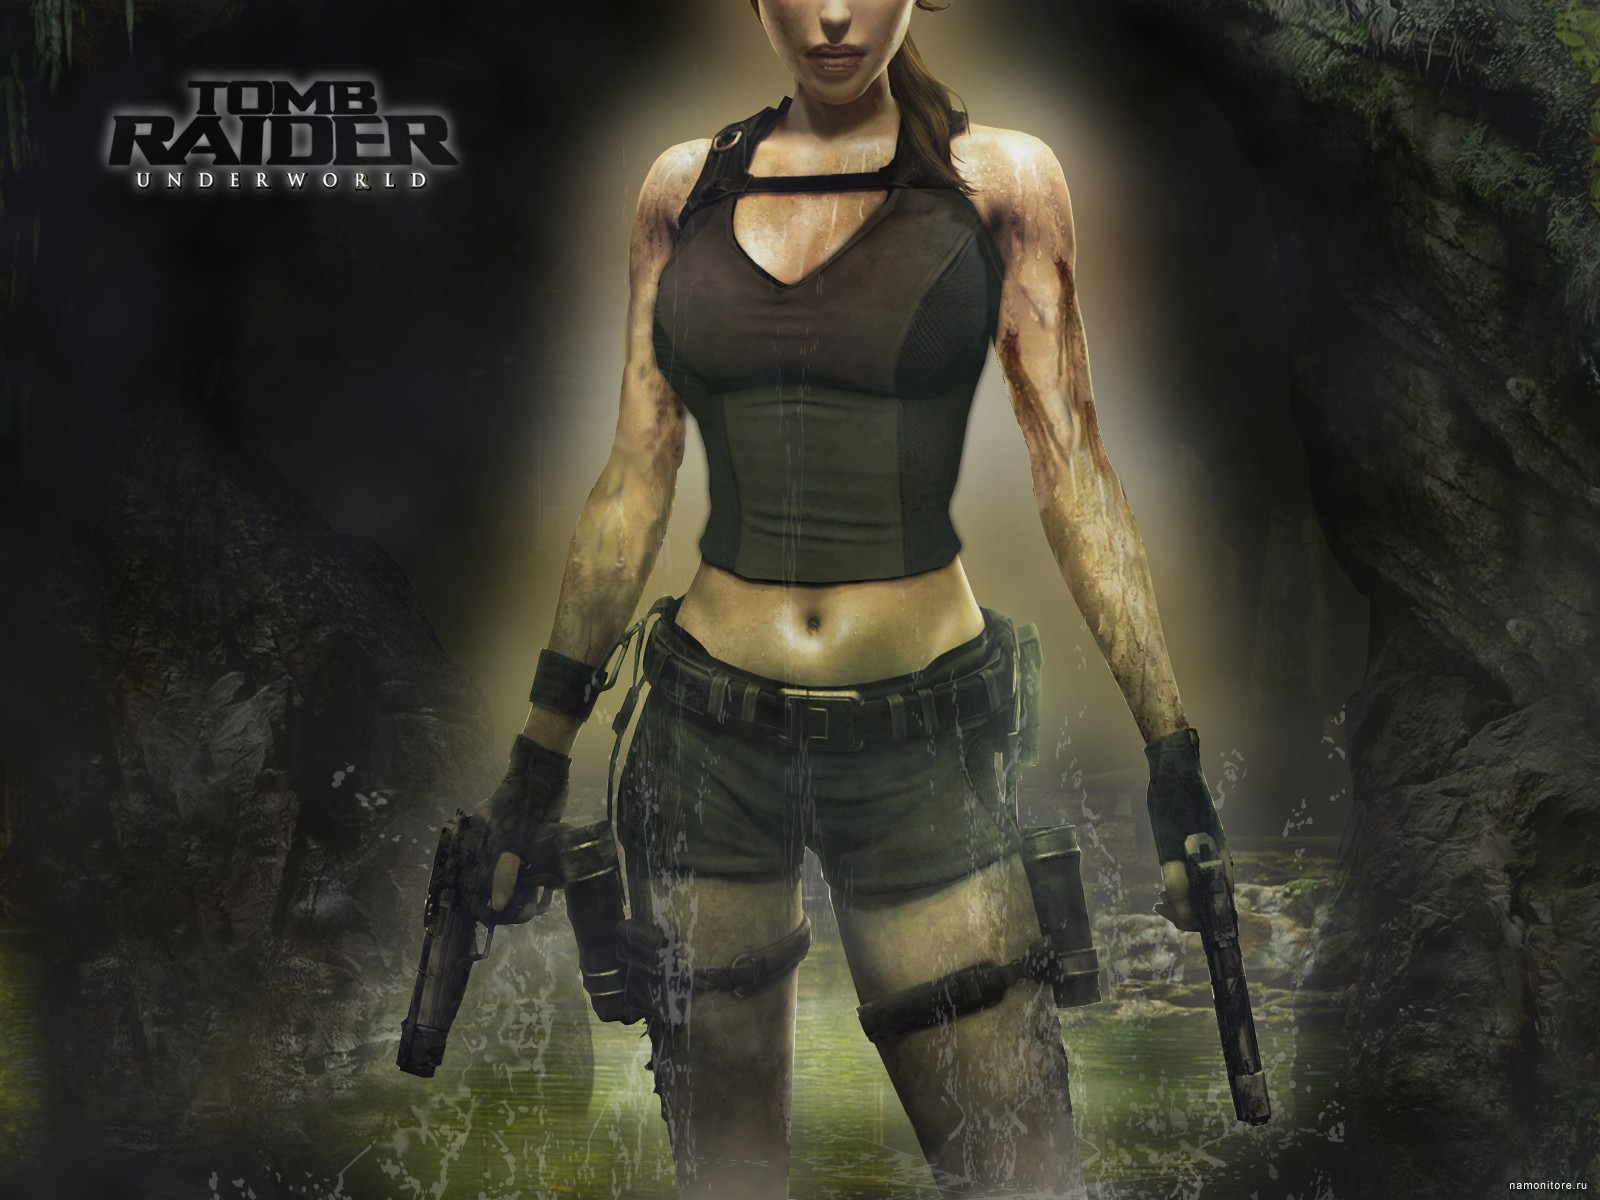 Tomb raider underworld lara croft henti vido fucking video